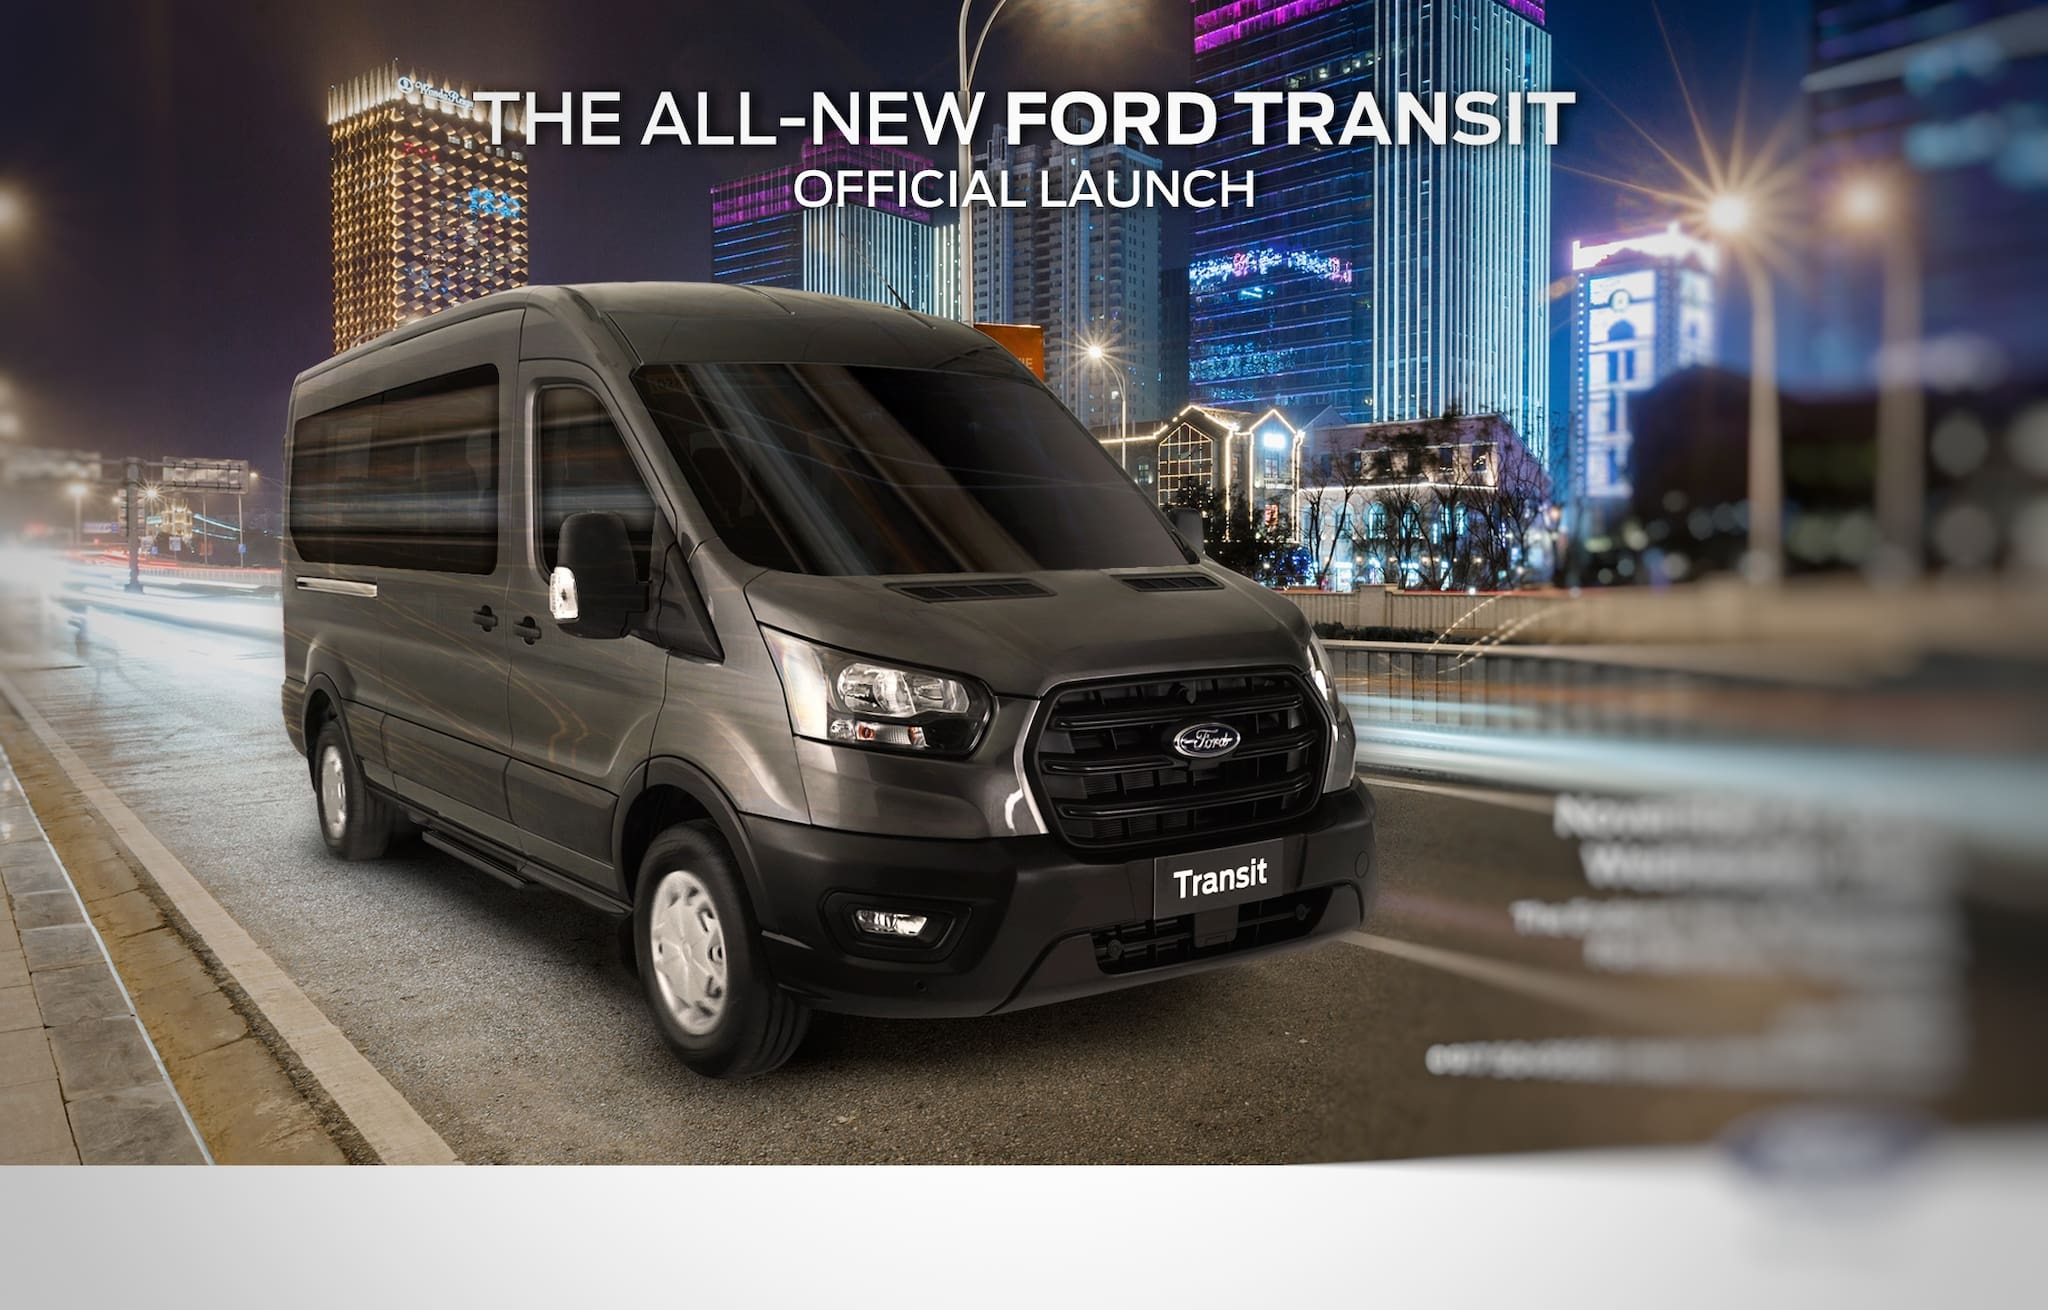 Here are the possible specs of the upcoming Ford Transit